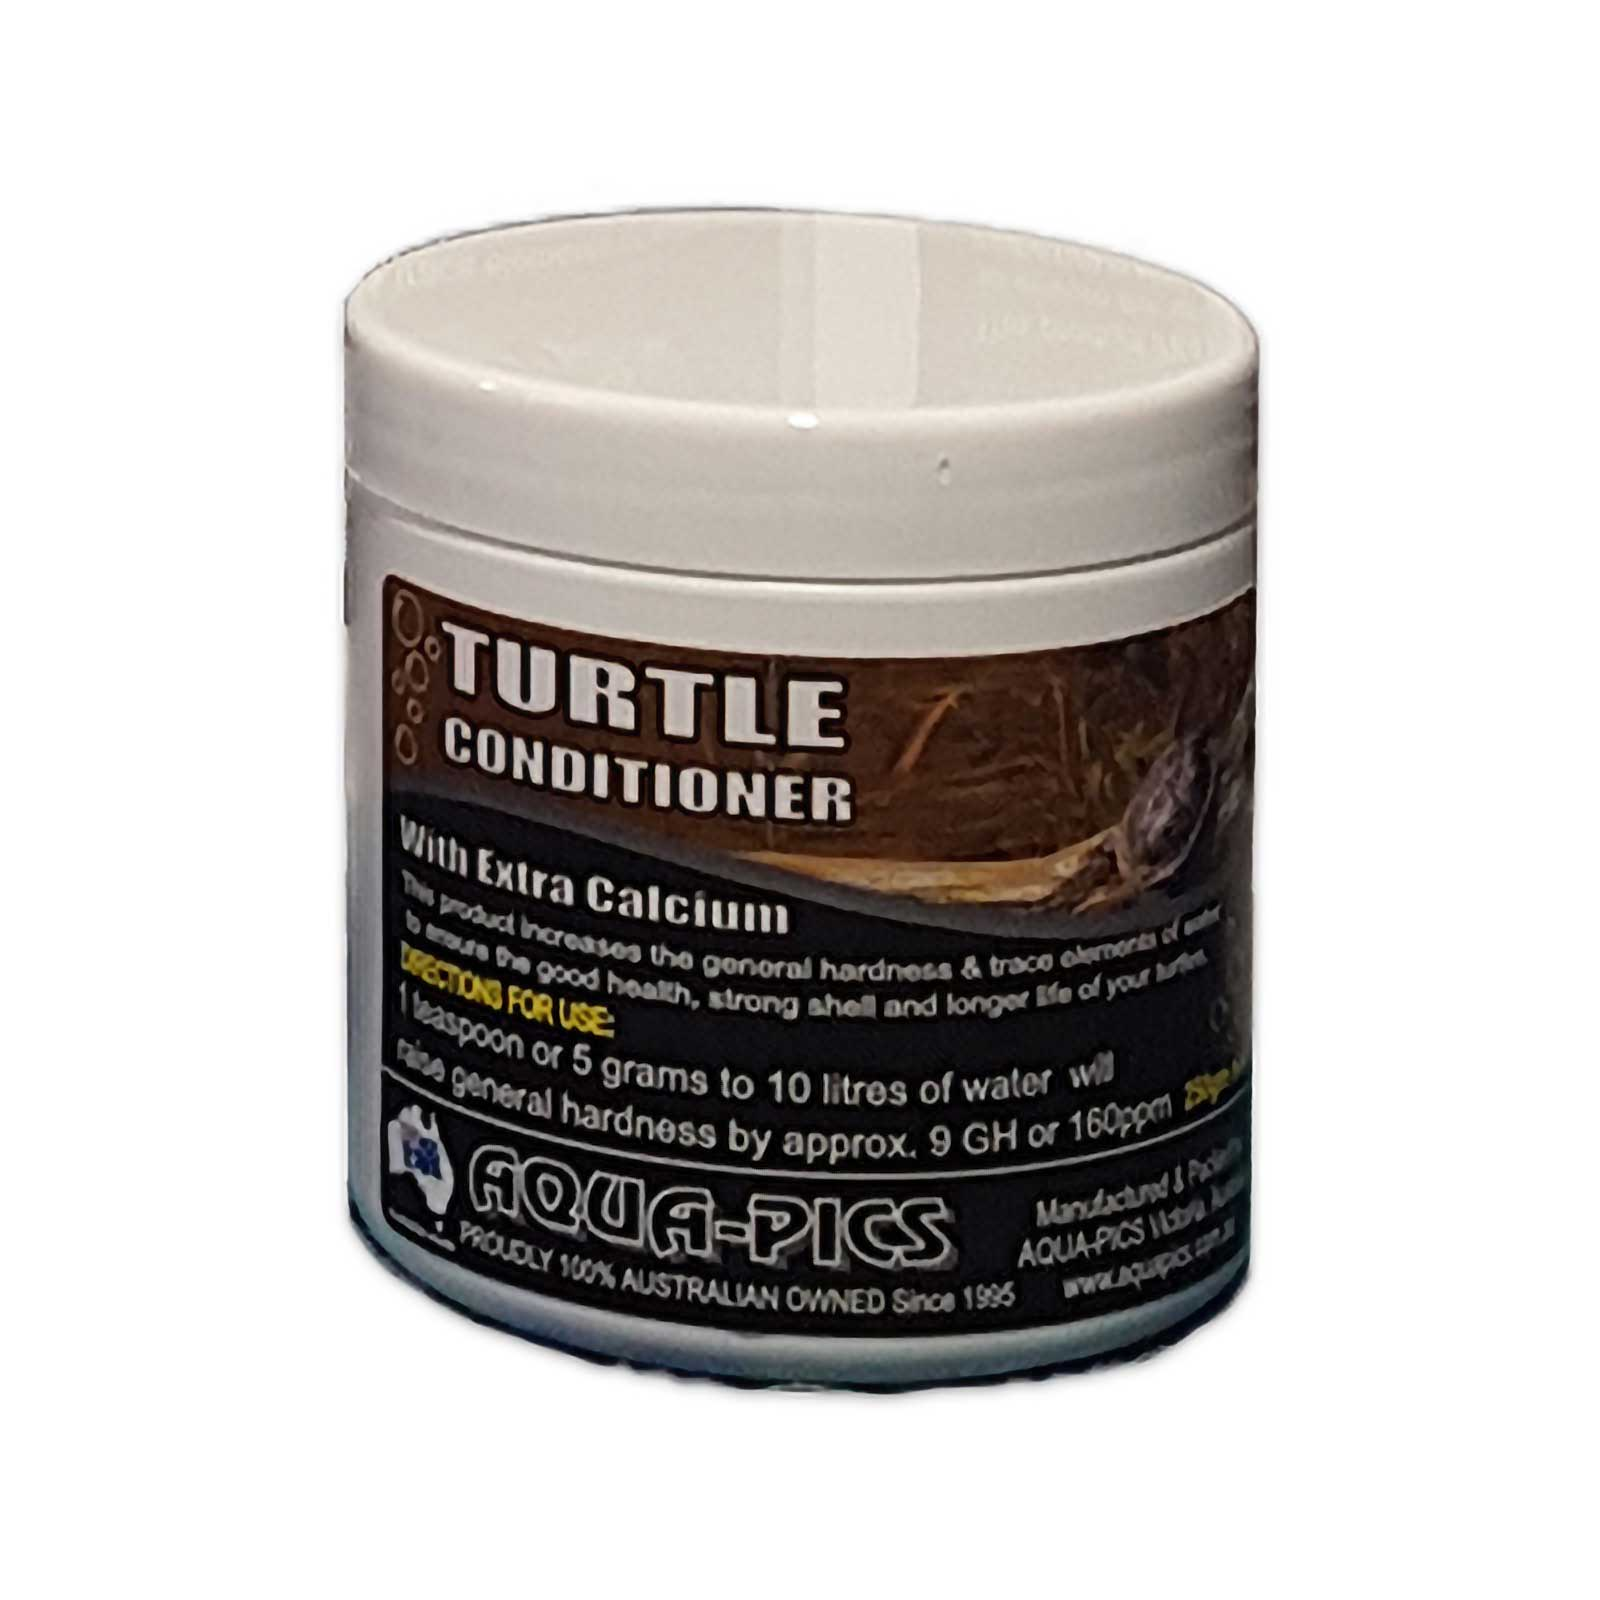 Aqua Pics Turtle gH Hardness Conditioner